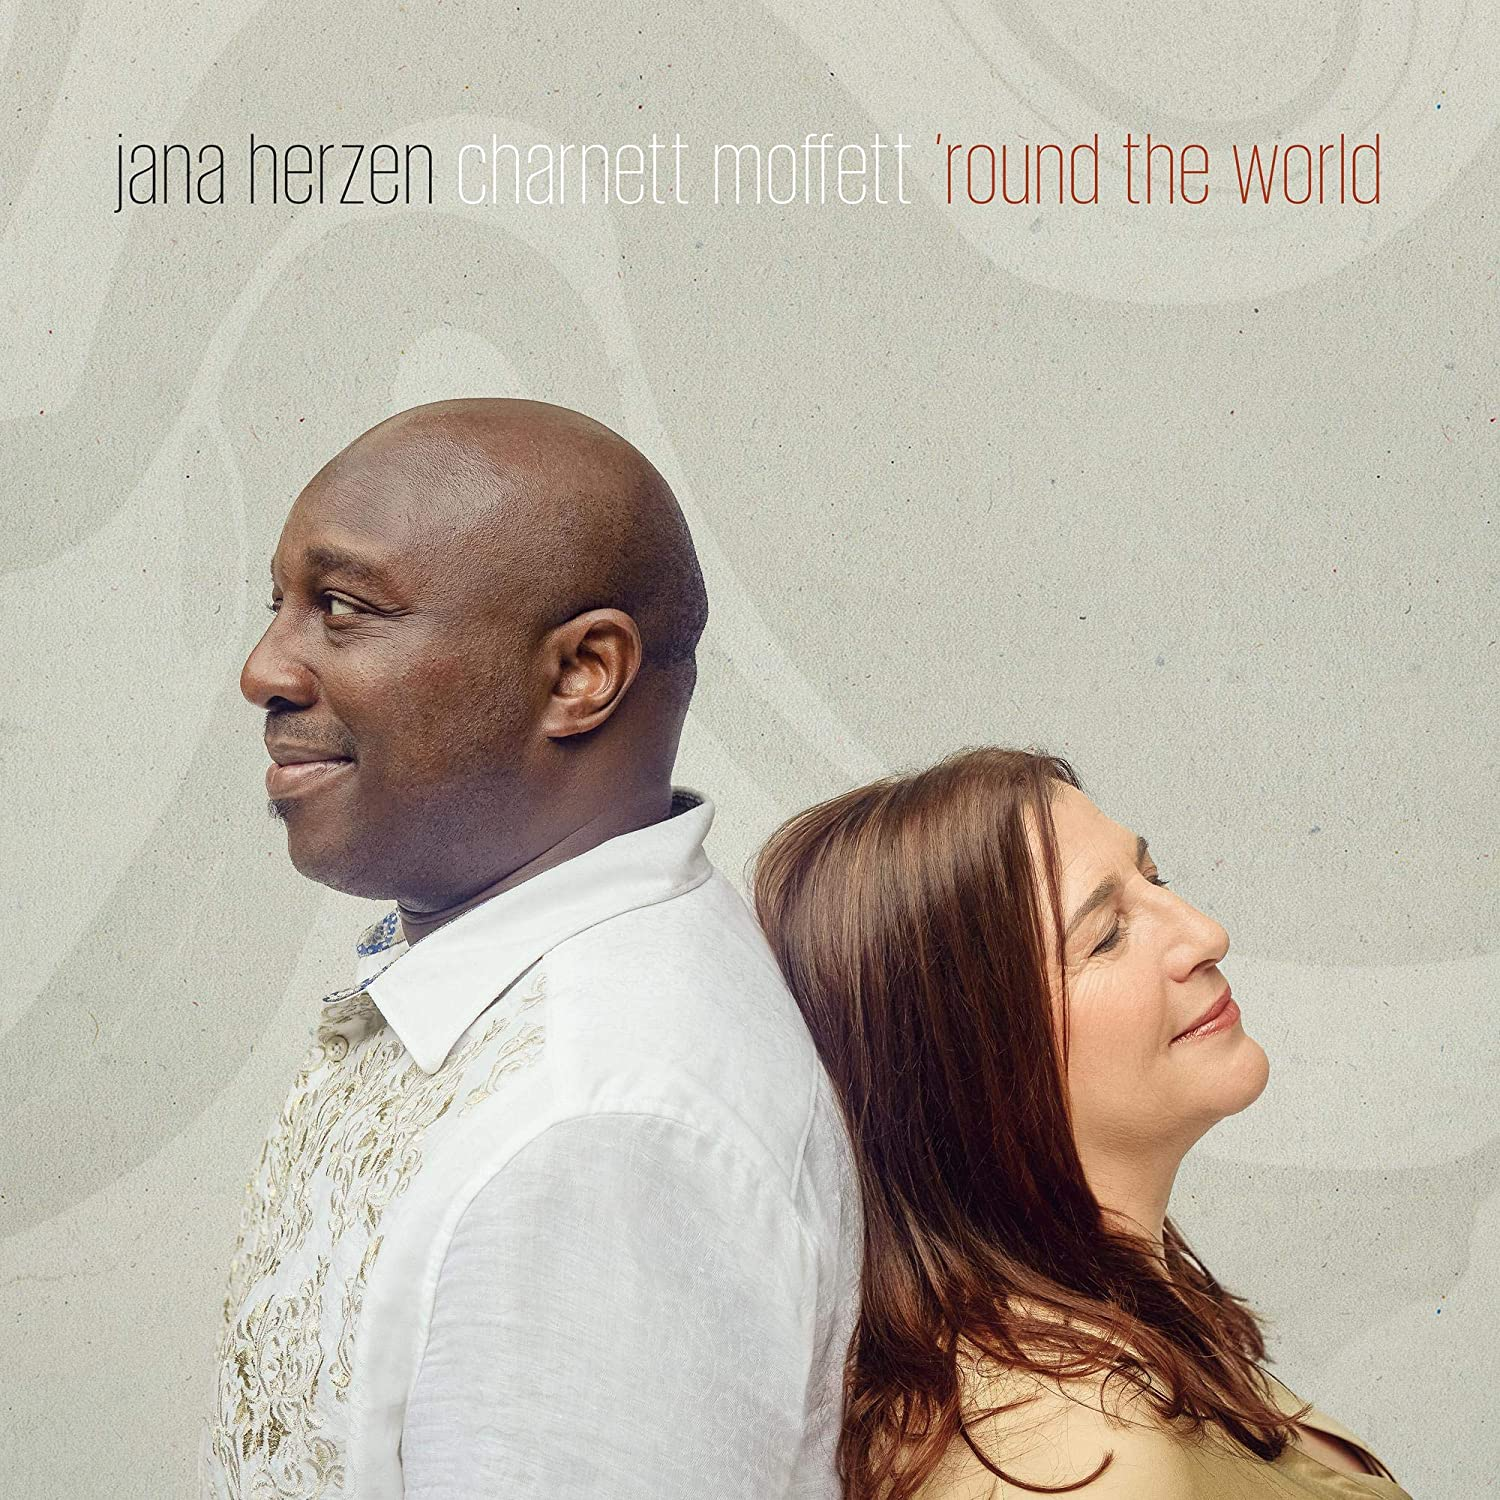 JANA HERZEN - Jana Herzen, Charnett Moffett : Round the World cover